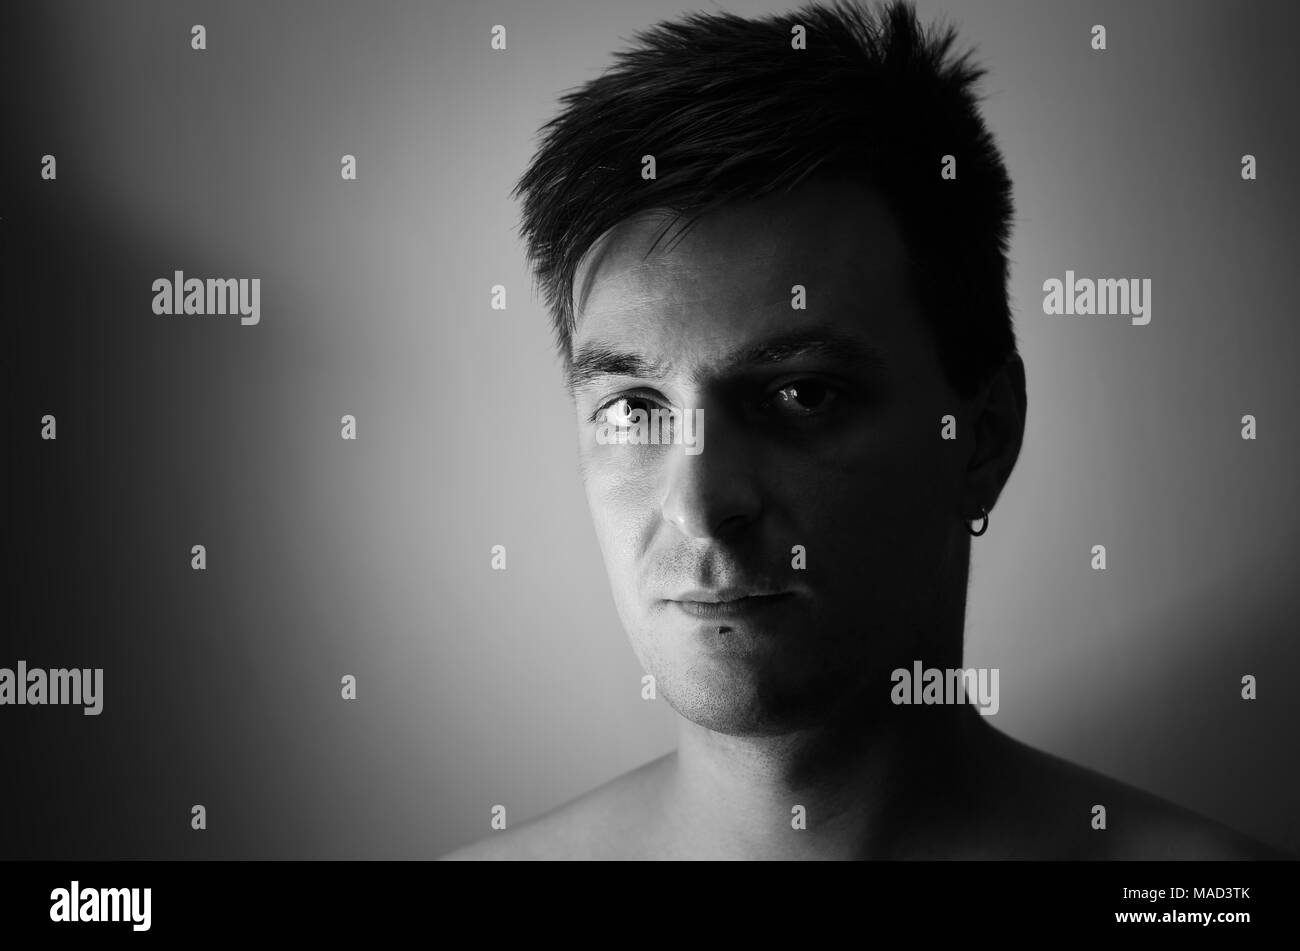 Young man contrast black and white portrait - Stock Image